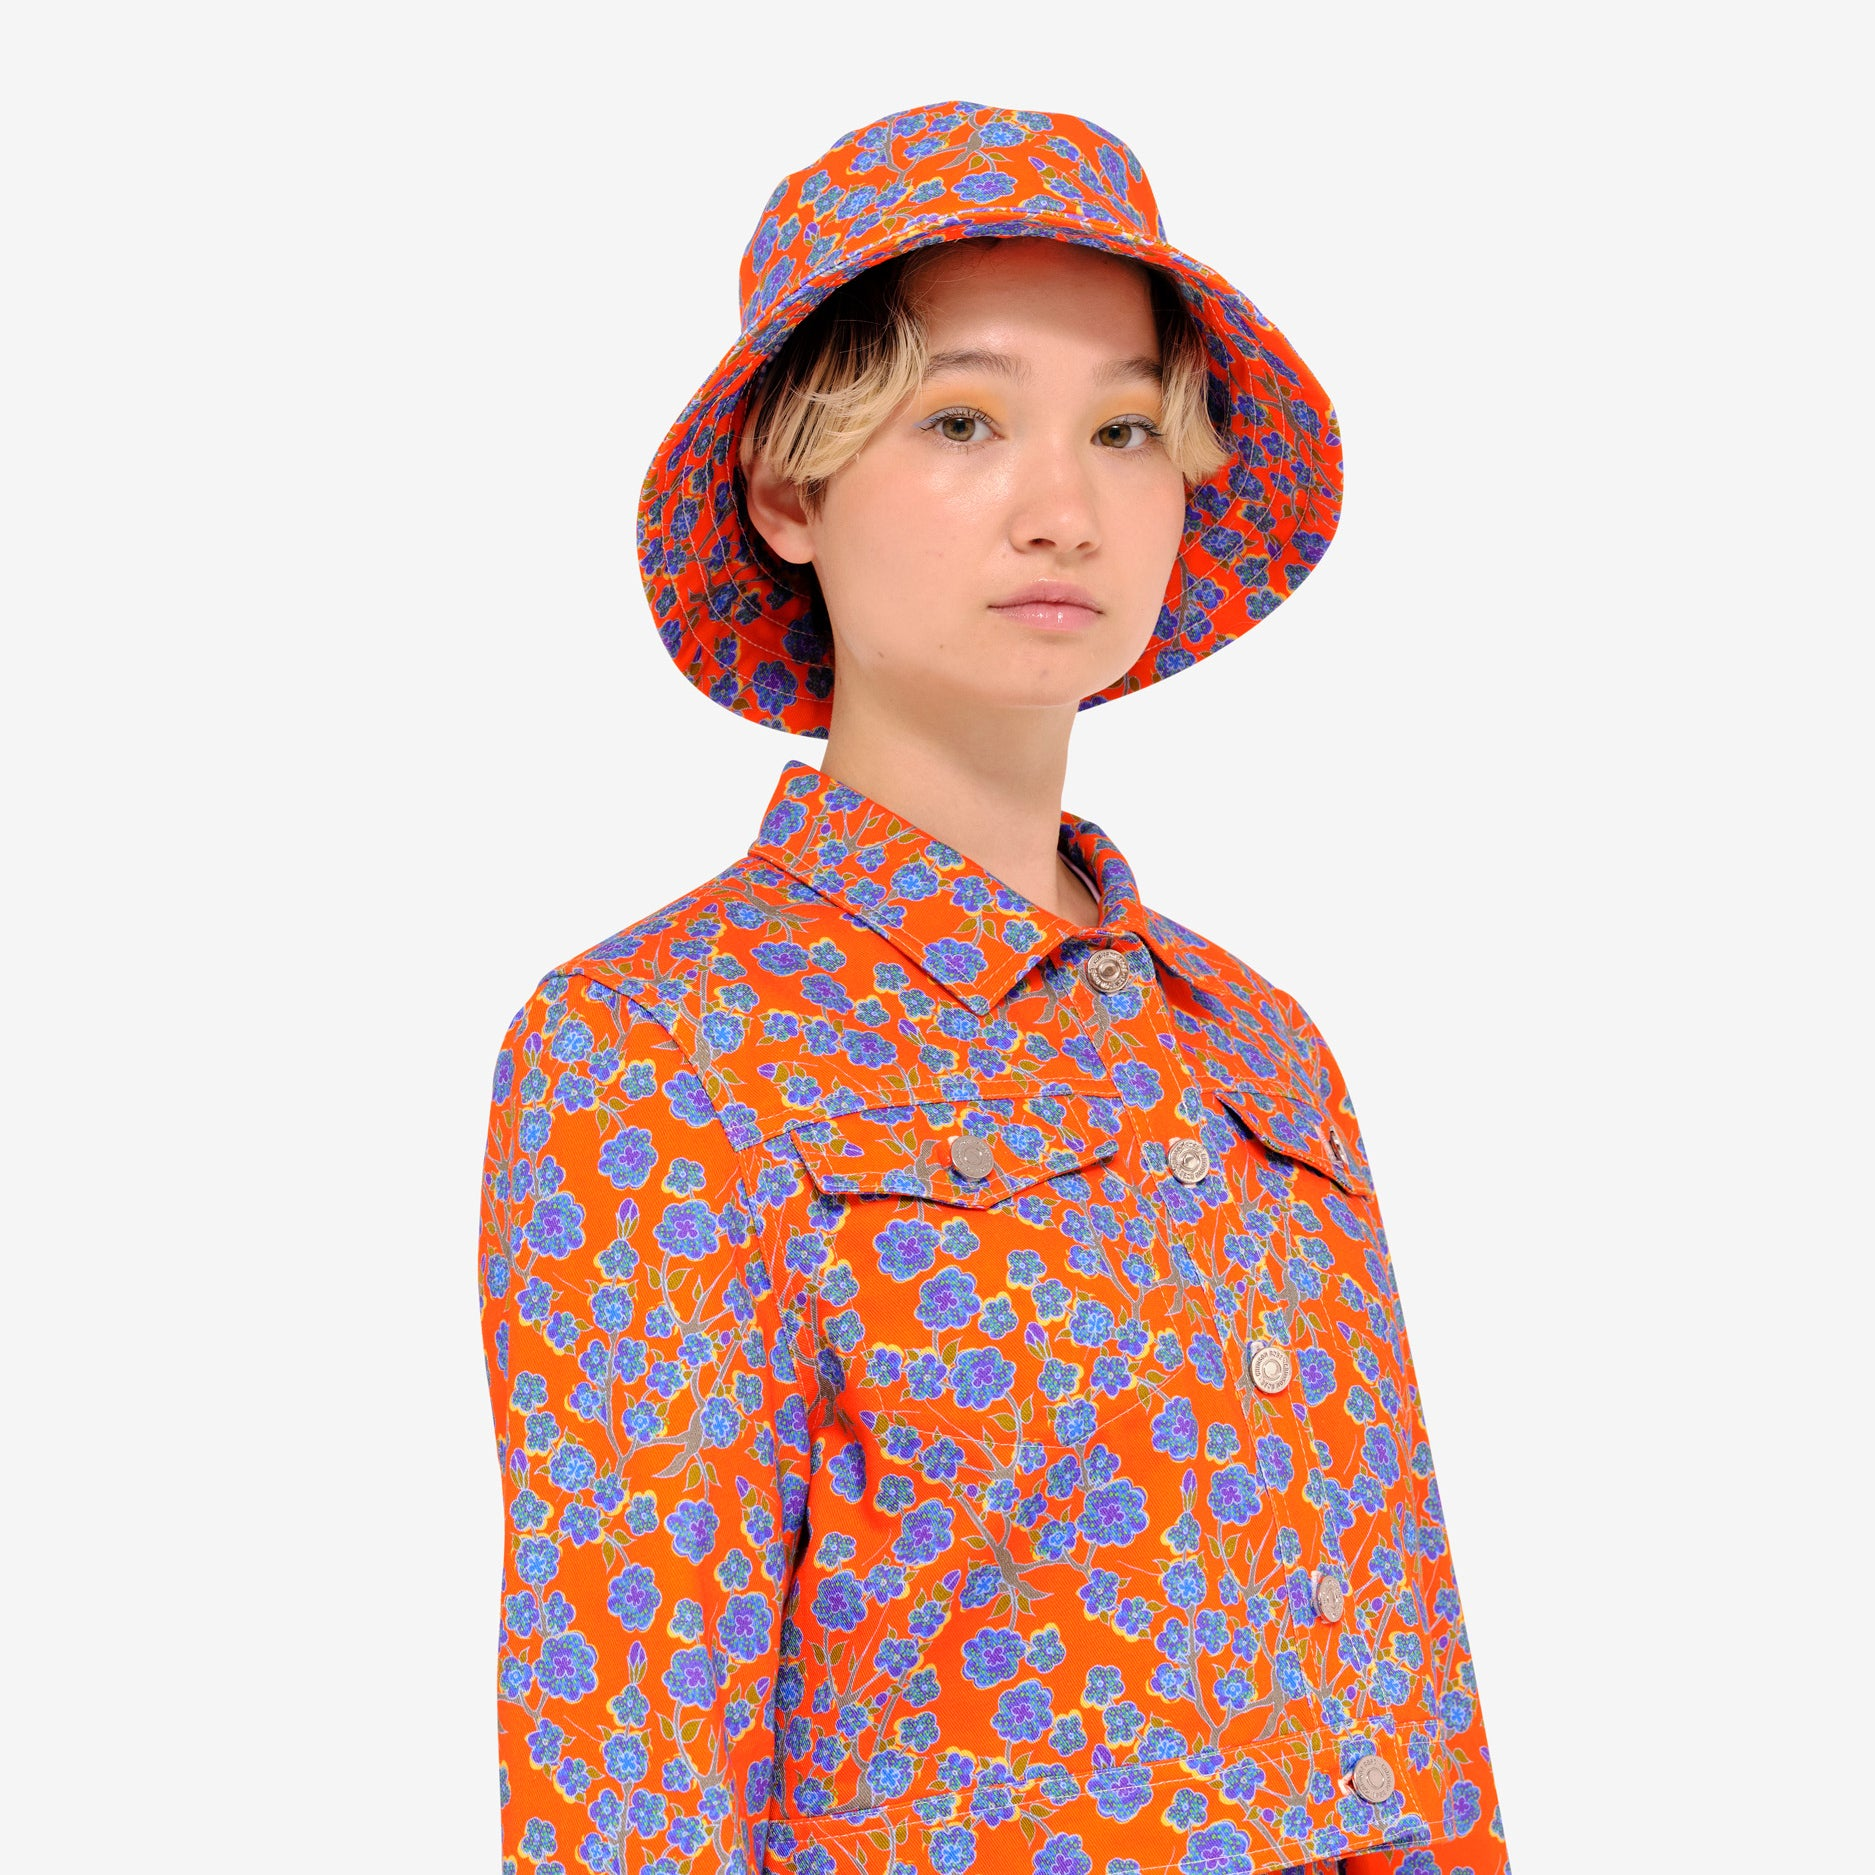 Model wearing Crimson Rose cropped cotton drill jacket and bucket hat with orange and blue floral print. Photography Rowan Corr.